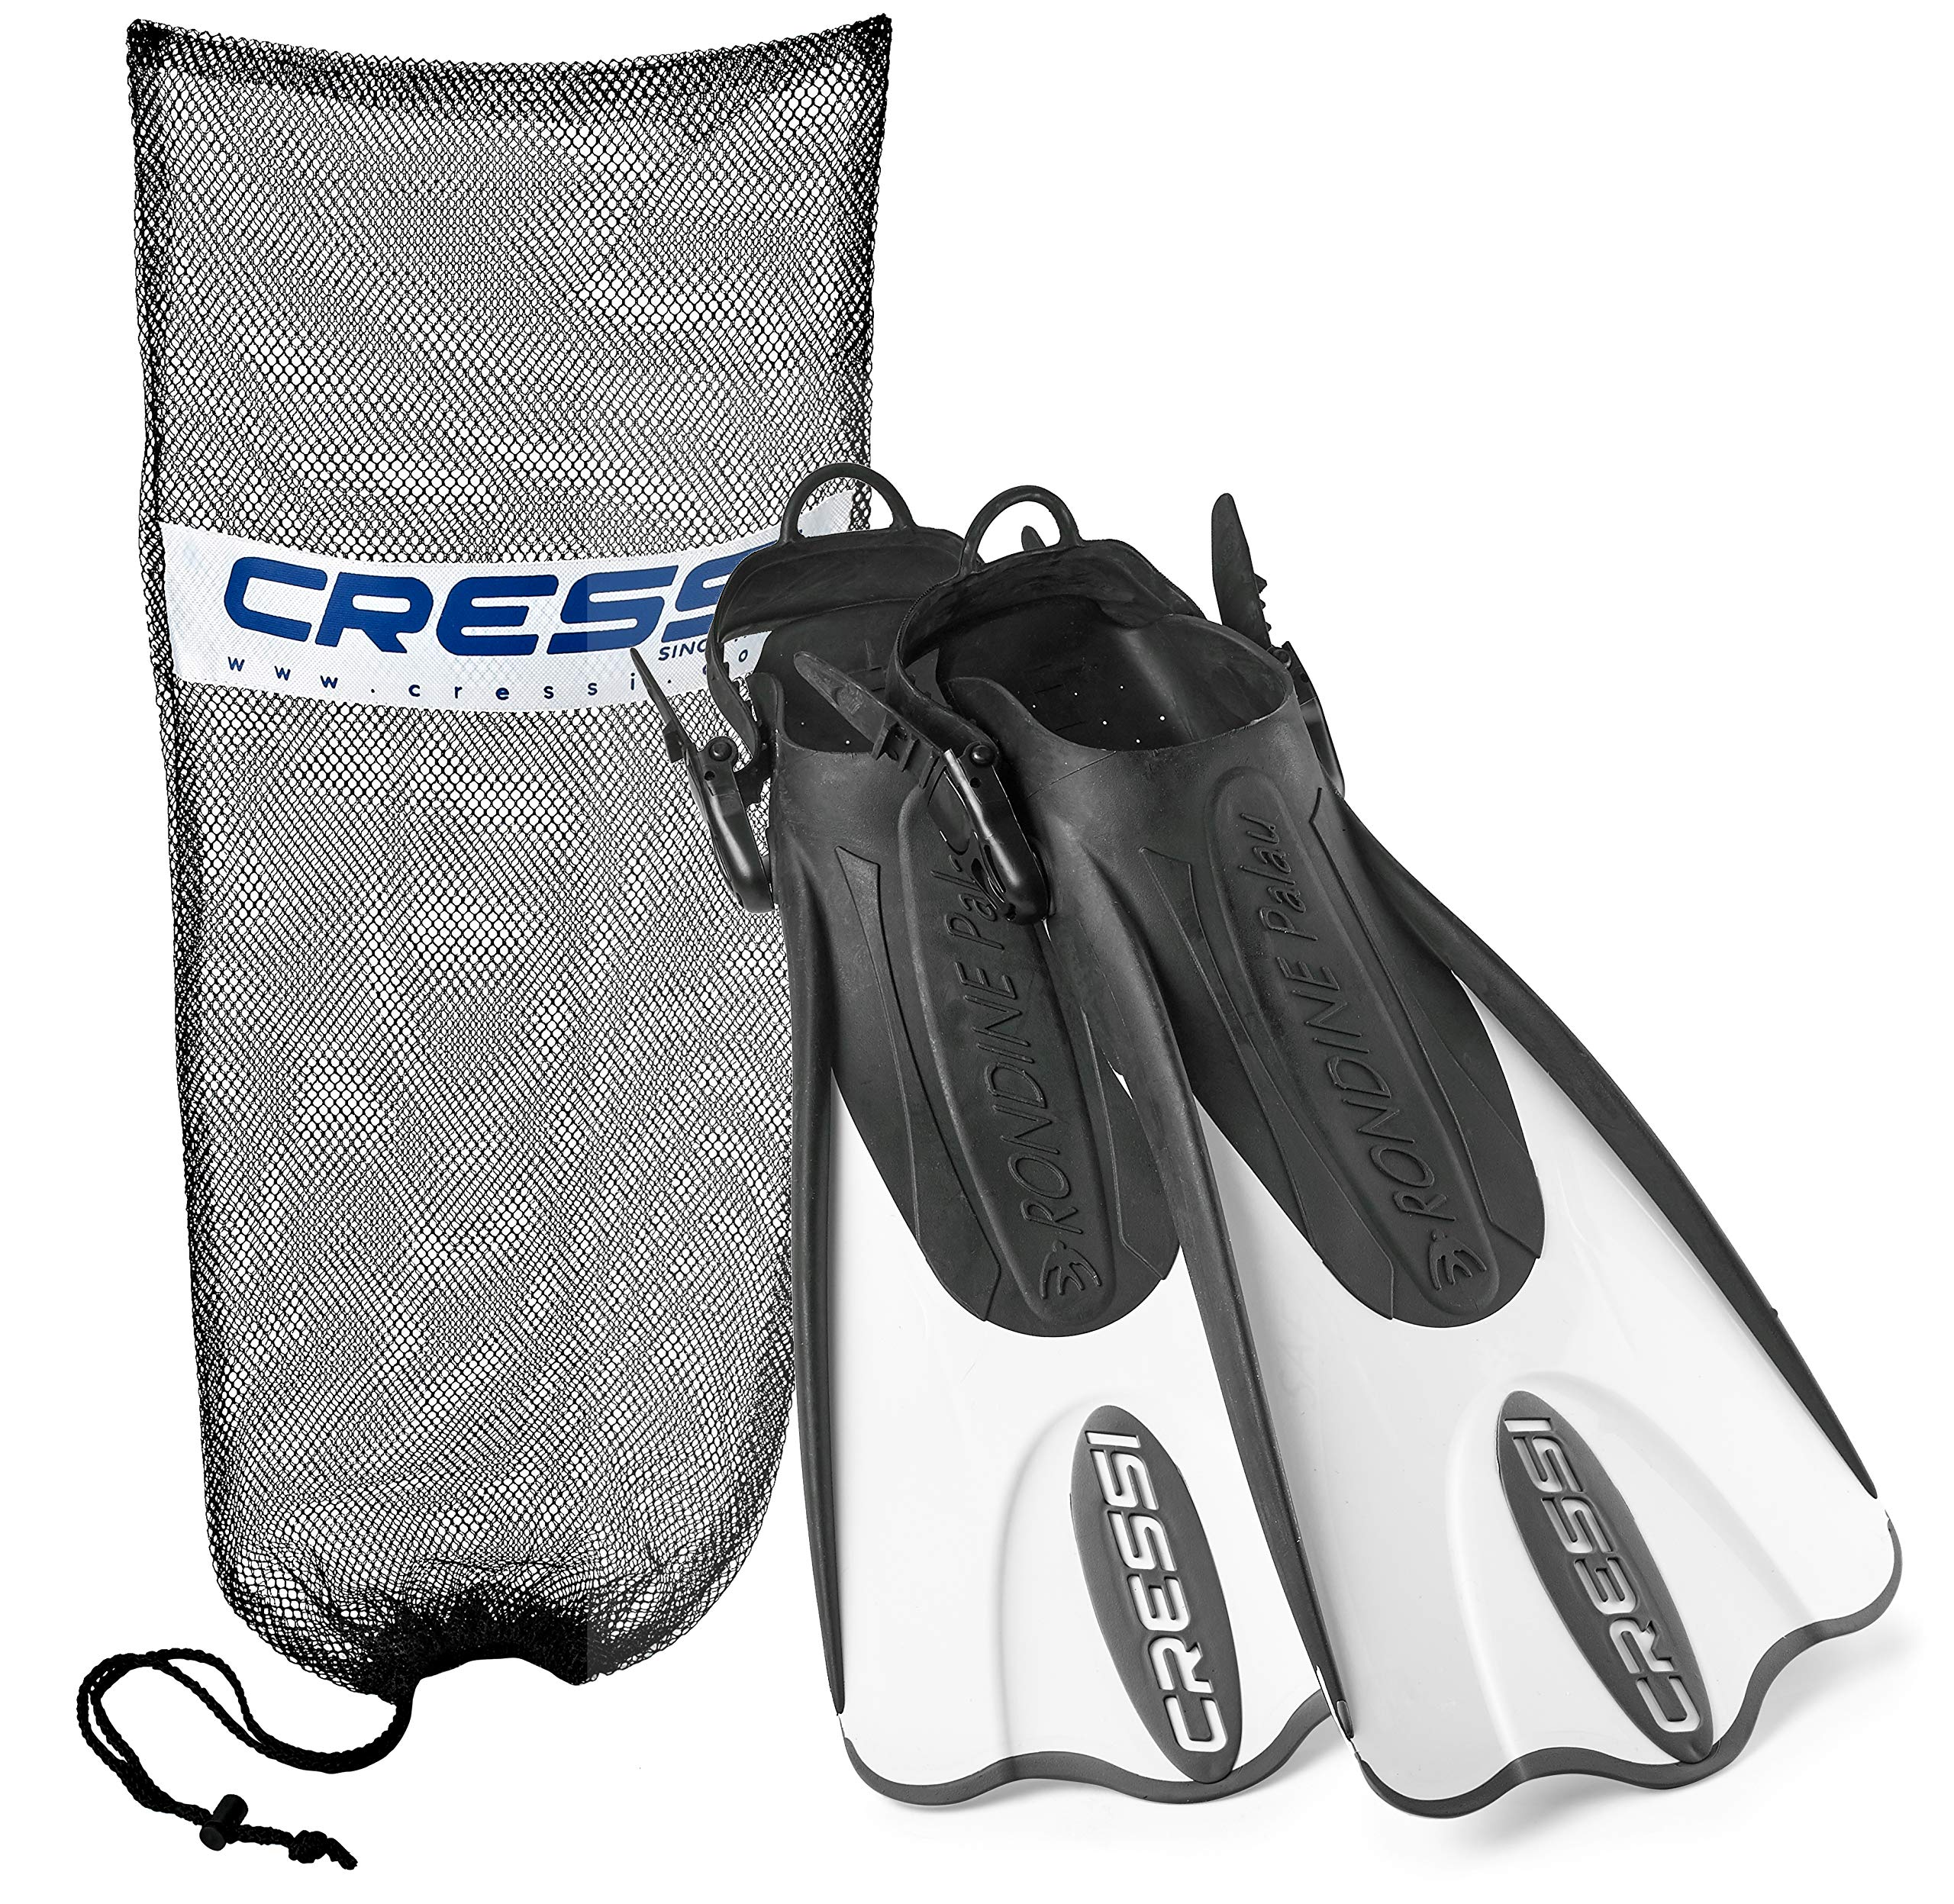 Cressi Palau Short Snorkeling Swim Fins with Mesh Bag (Black White, Small/Medium)